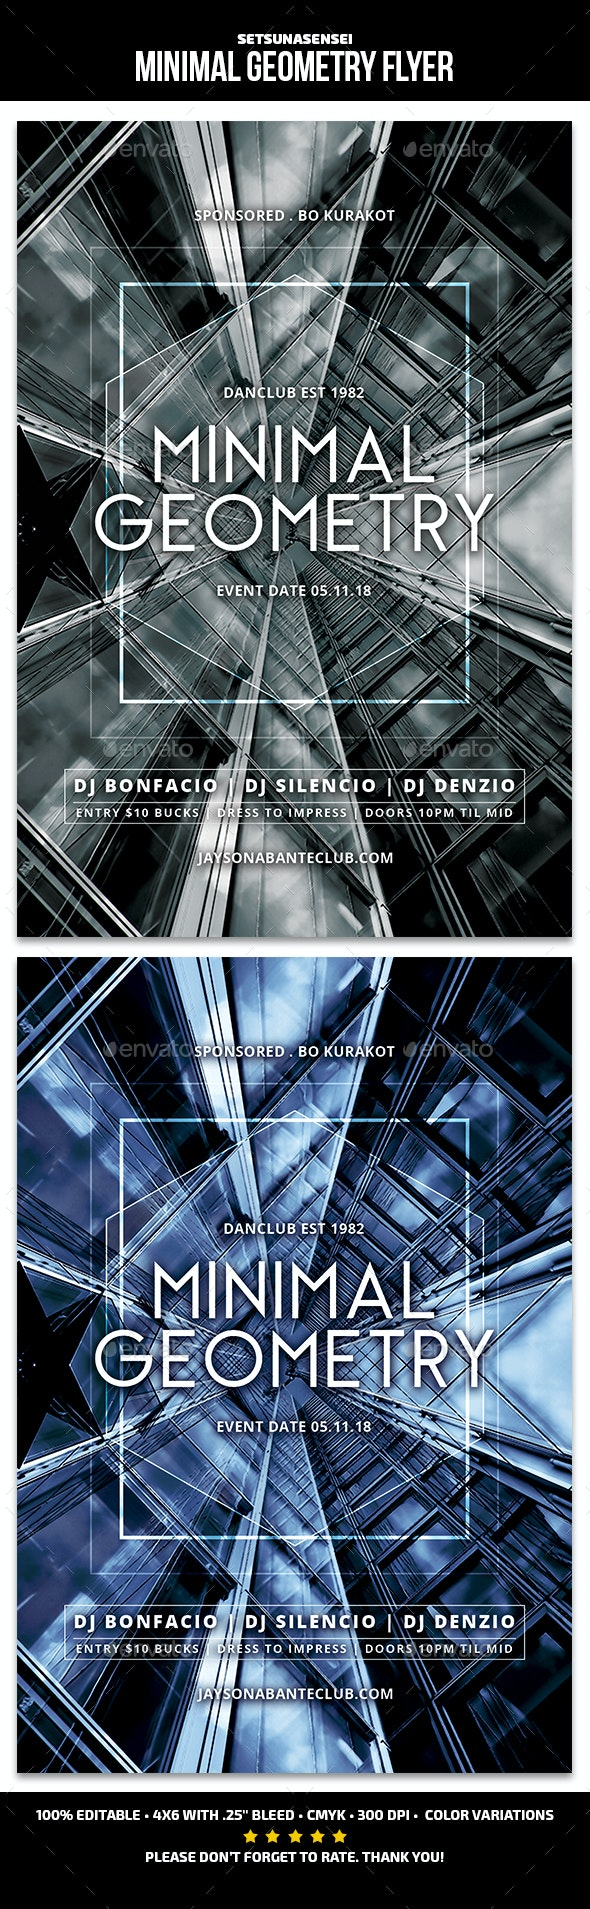 Minimal Geometry Flyer - Events Flyers